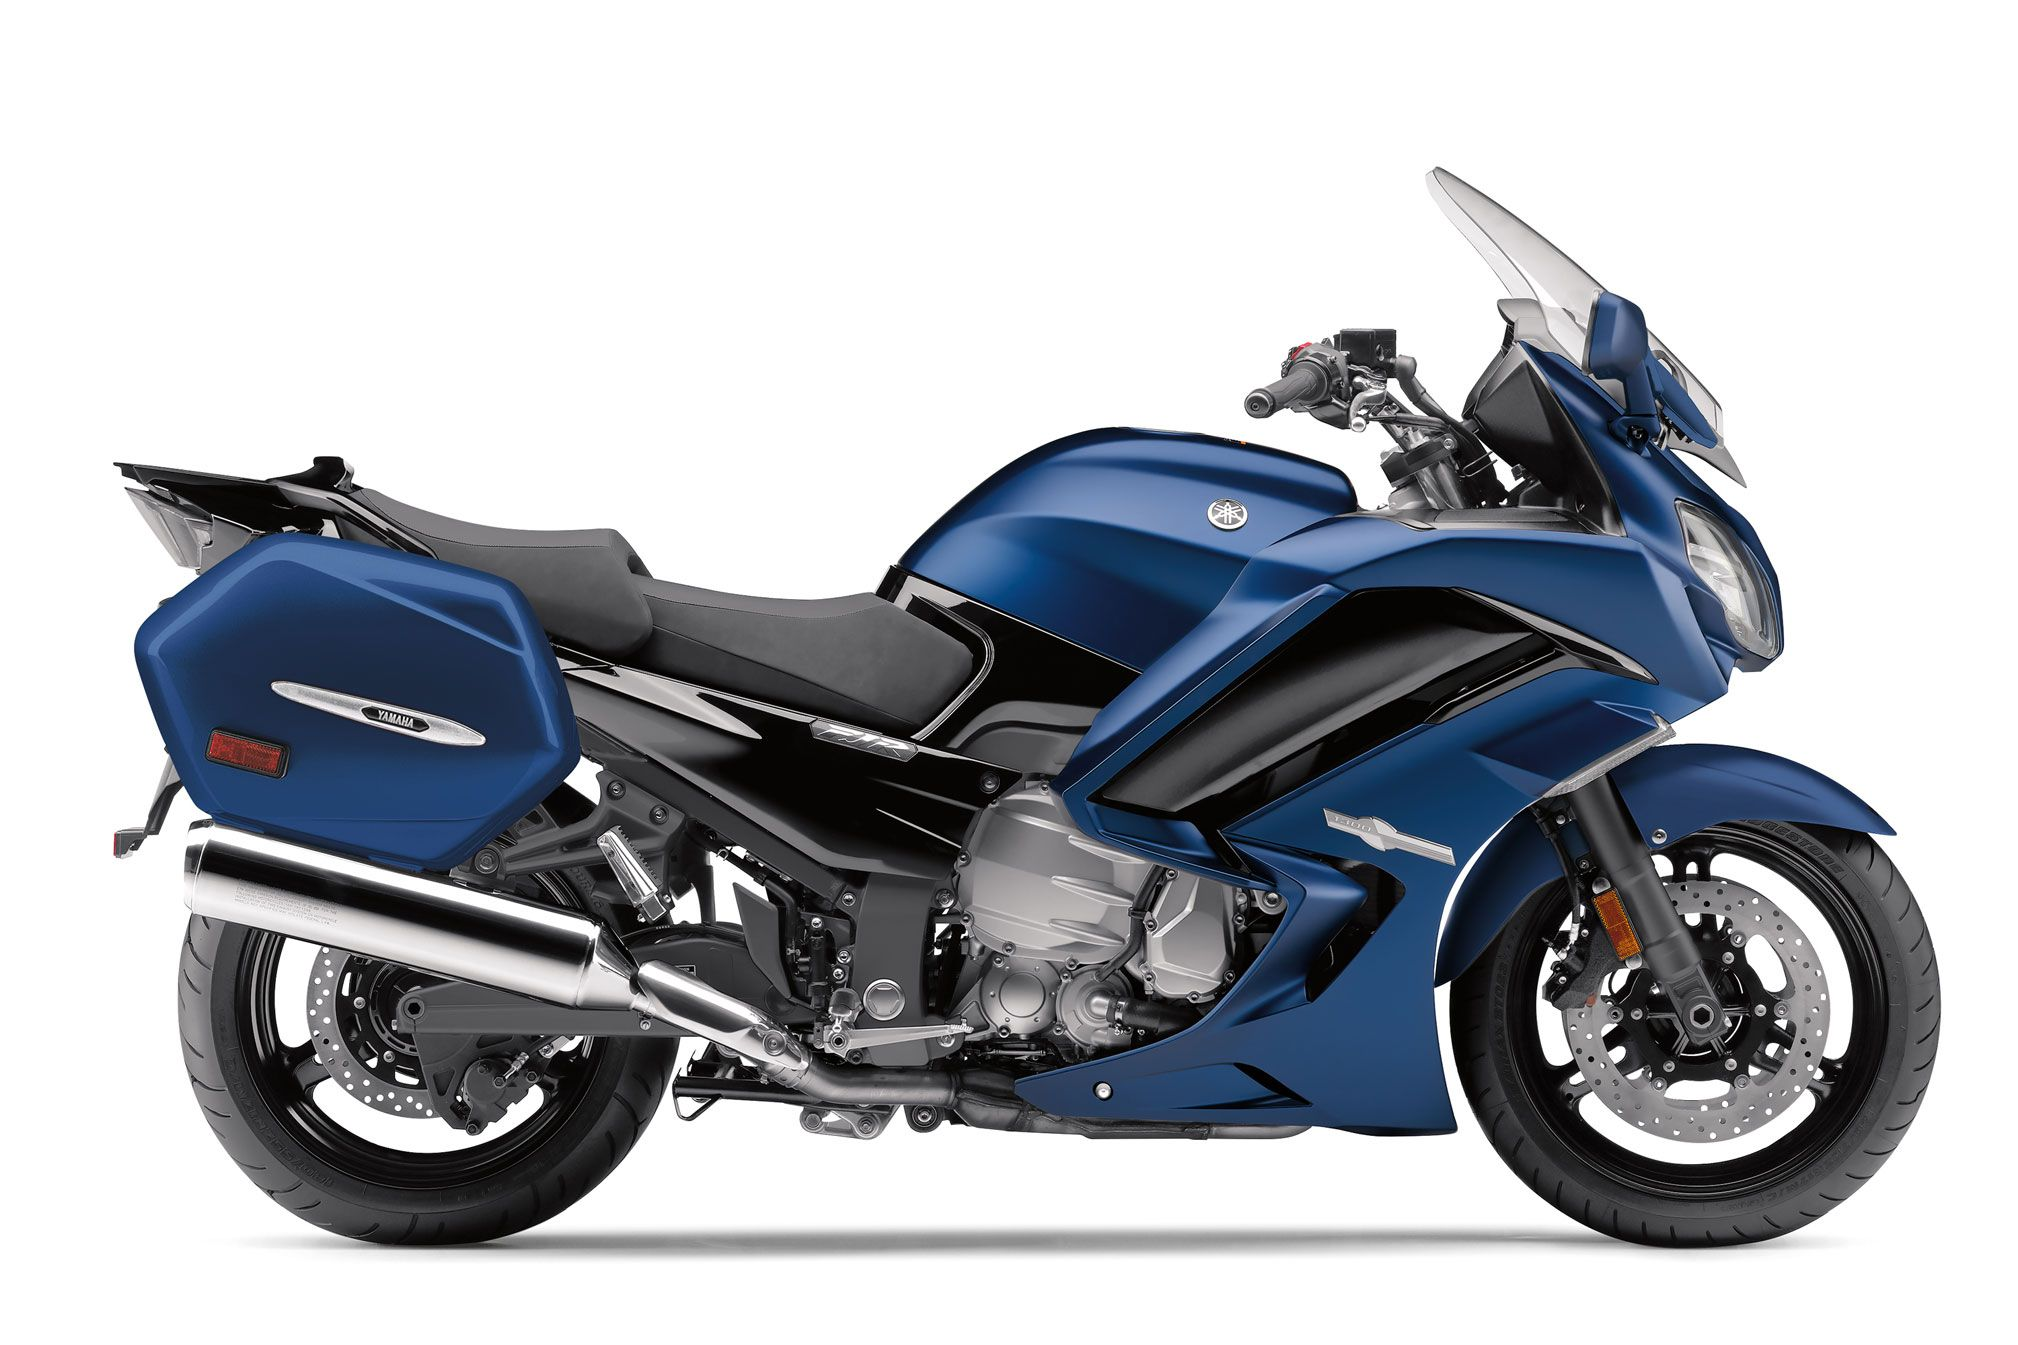 2018 yamaha fjr1300a review sport touring in style 2018 for Yamaha adventure bike 2018